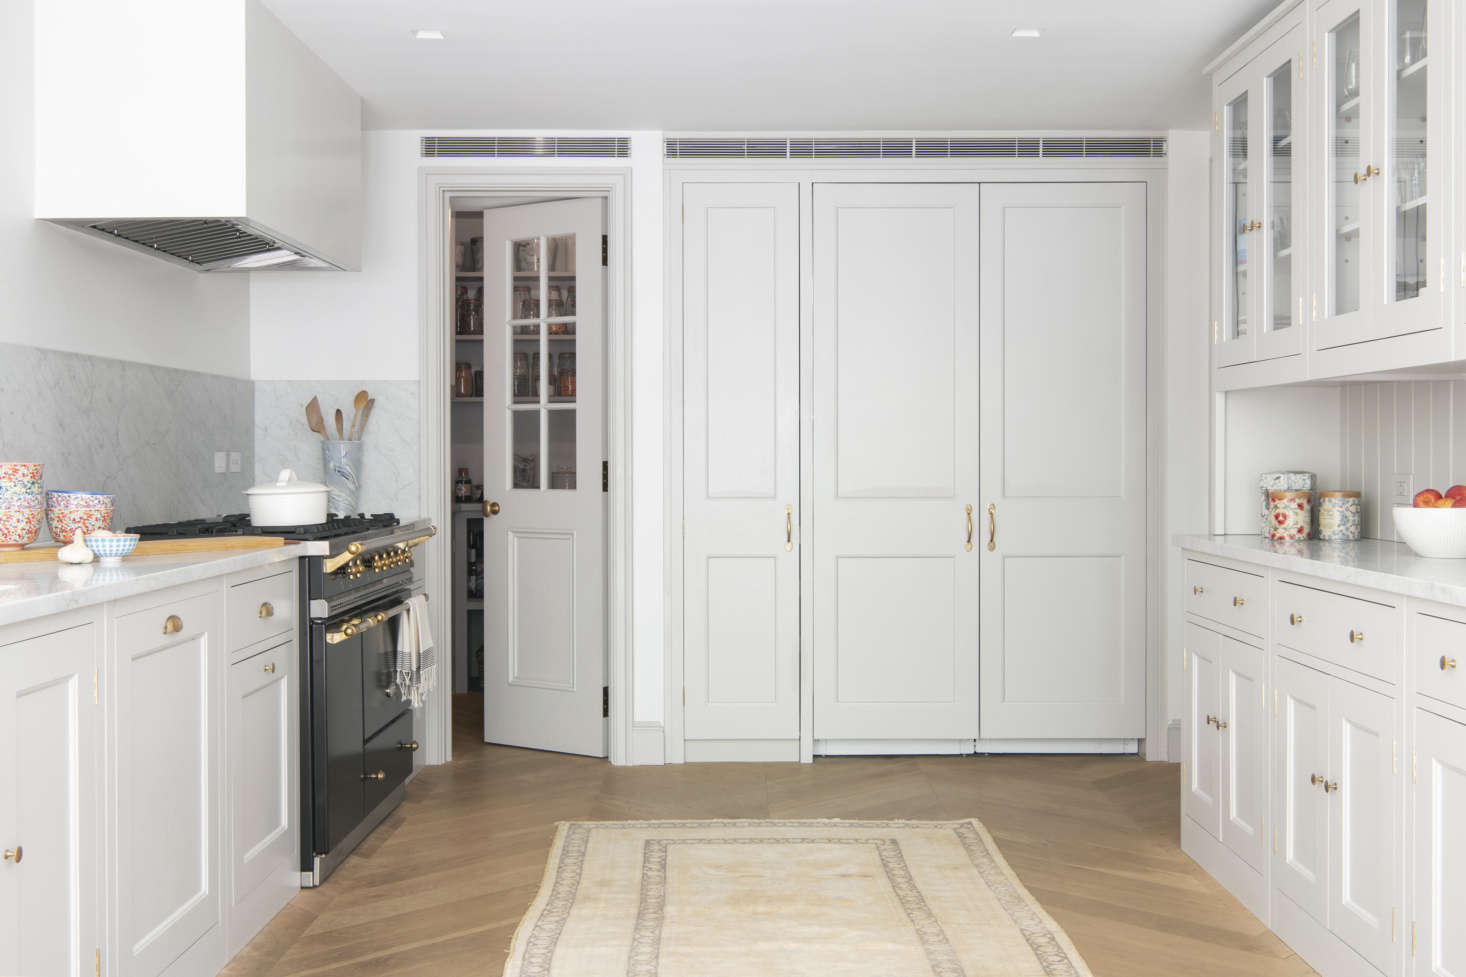 An integrated Sub Zero double-doored fridge in the back of the room is flanked by a pantry on one side and the mudroom on the other.